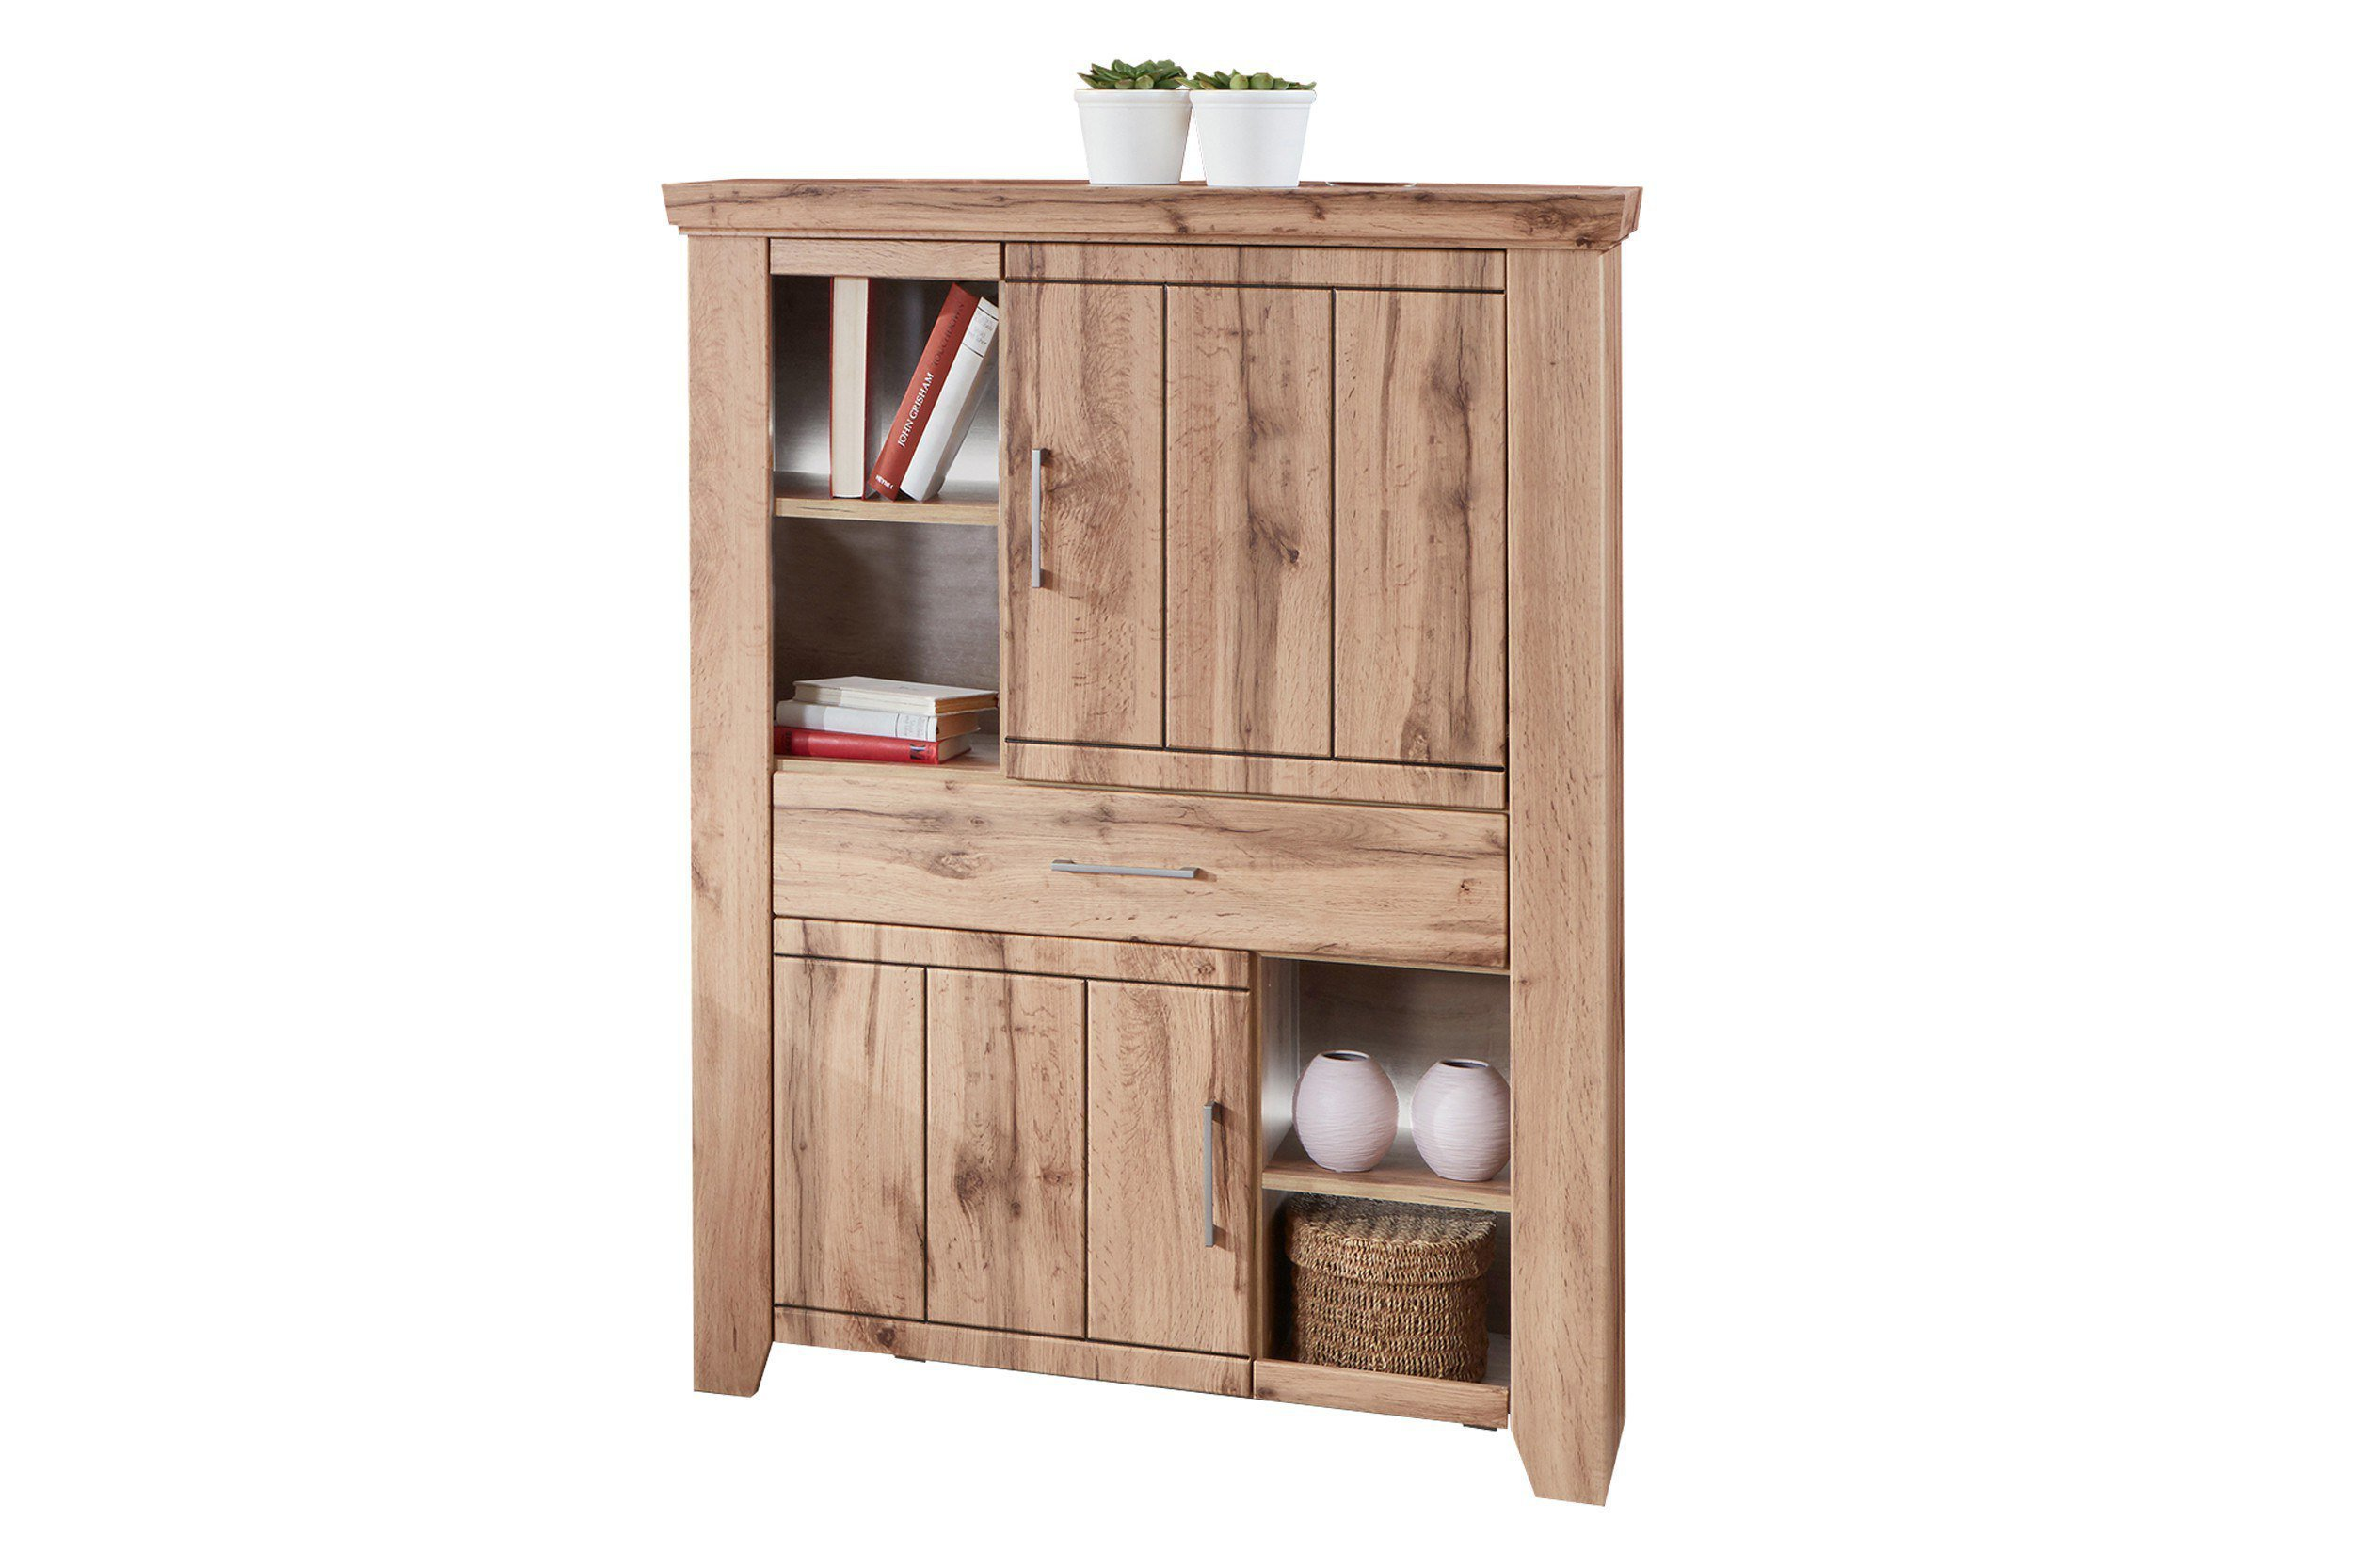 Möbel Online Shop Spanien Ideal Möbel Highboard Stromberg Wotan Eiche Möbel Letz